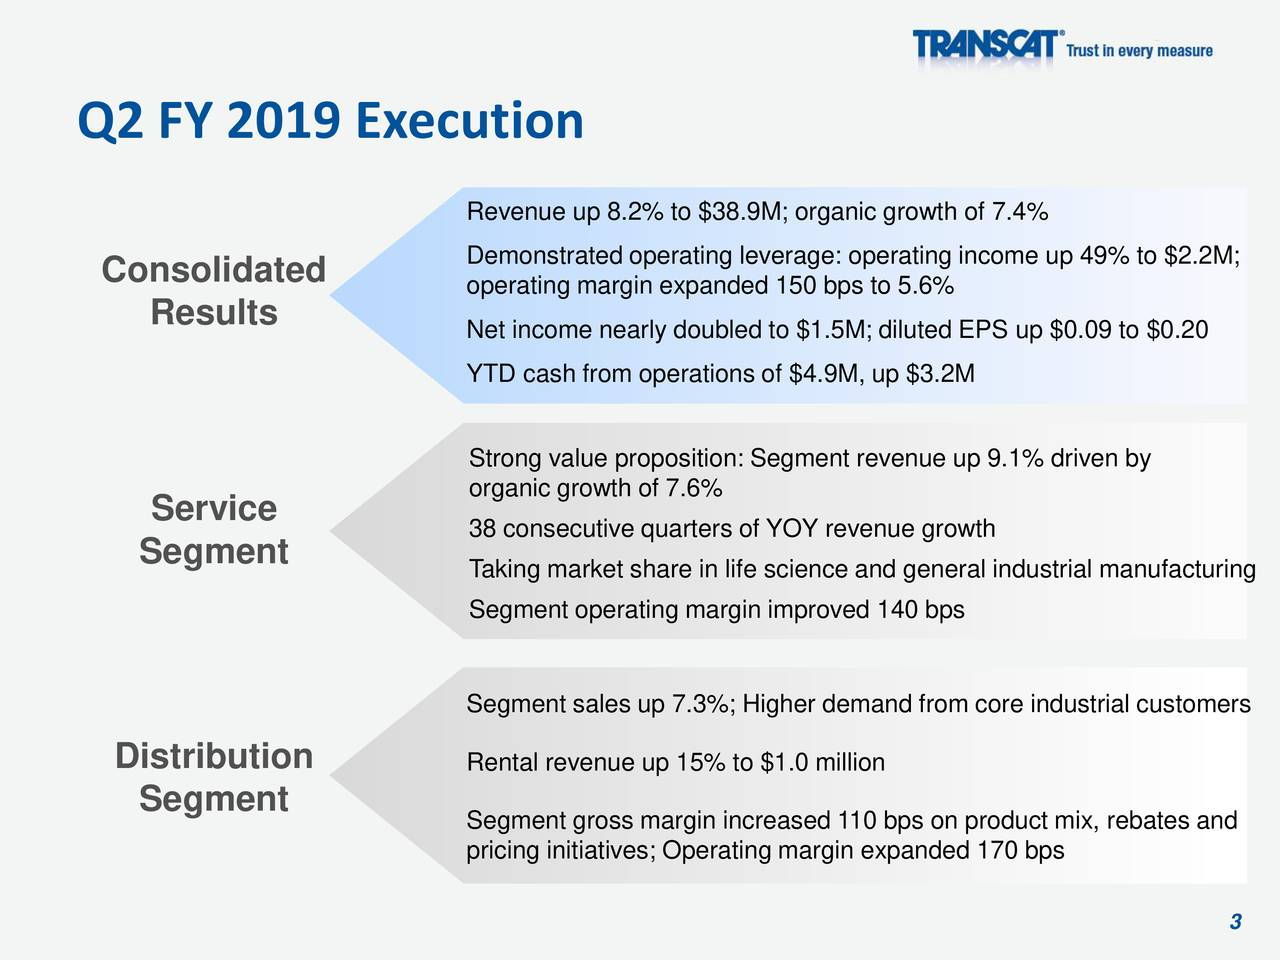 Revenue up 8.2% to $38.9M; organic growth of 7.4% Demonstrated operating leverage: operating income up 49% to $2.2M; Consolidated operating margin expanded 150 bps to 5.6% Results Net income nearly doubled to $1.5M; diluted EPS up $0.09 to $0.20 YTD cash from operations of $4.9M, up $3.2M Strong value proposition: Segment revenue up 9.1% driven by organic growth of 7.6% Service 38 consecutive quarters of YOY revenue growth Segment Taking market share in life science and general industrial manufacturing Segment operating margin improved 140 bps Segment sales up 7.3%; Higher demand from core industrial customers Distribution Rental revenue up 15% to $1.0 million Segment Segment gross margin increased 110 bps on product mix, rebates and pricing initiatives; Operating margin expanded 170 bps 3